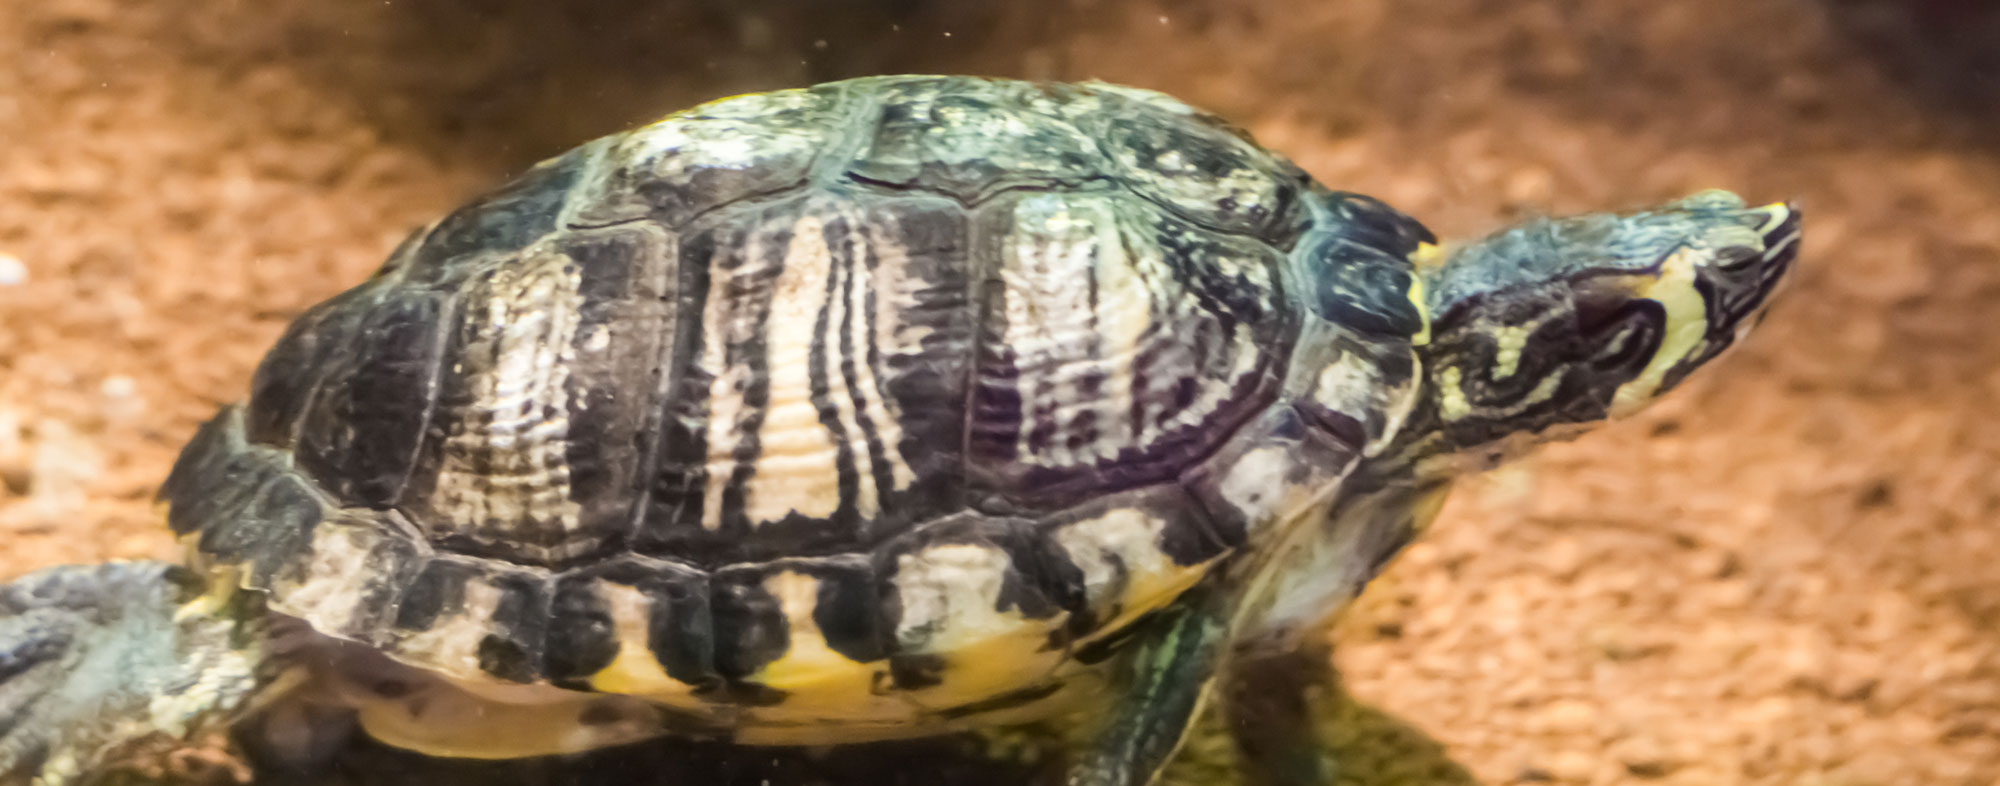 Monitoring Your Turtle's Health - Hartz